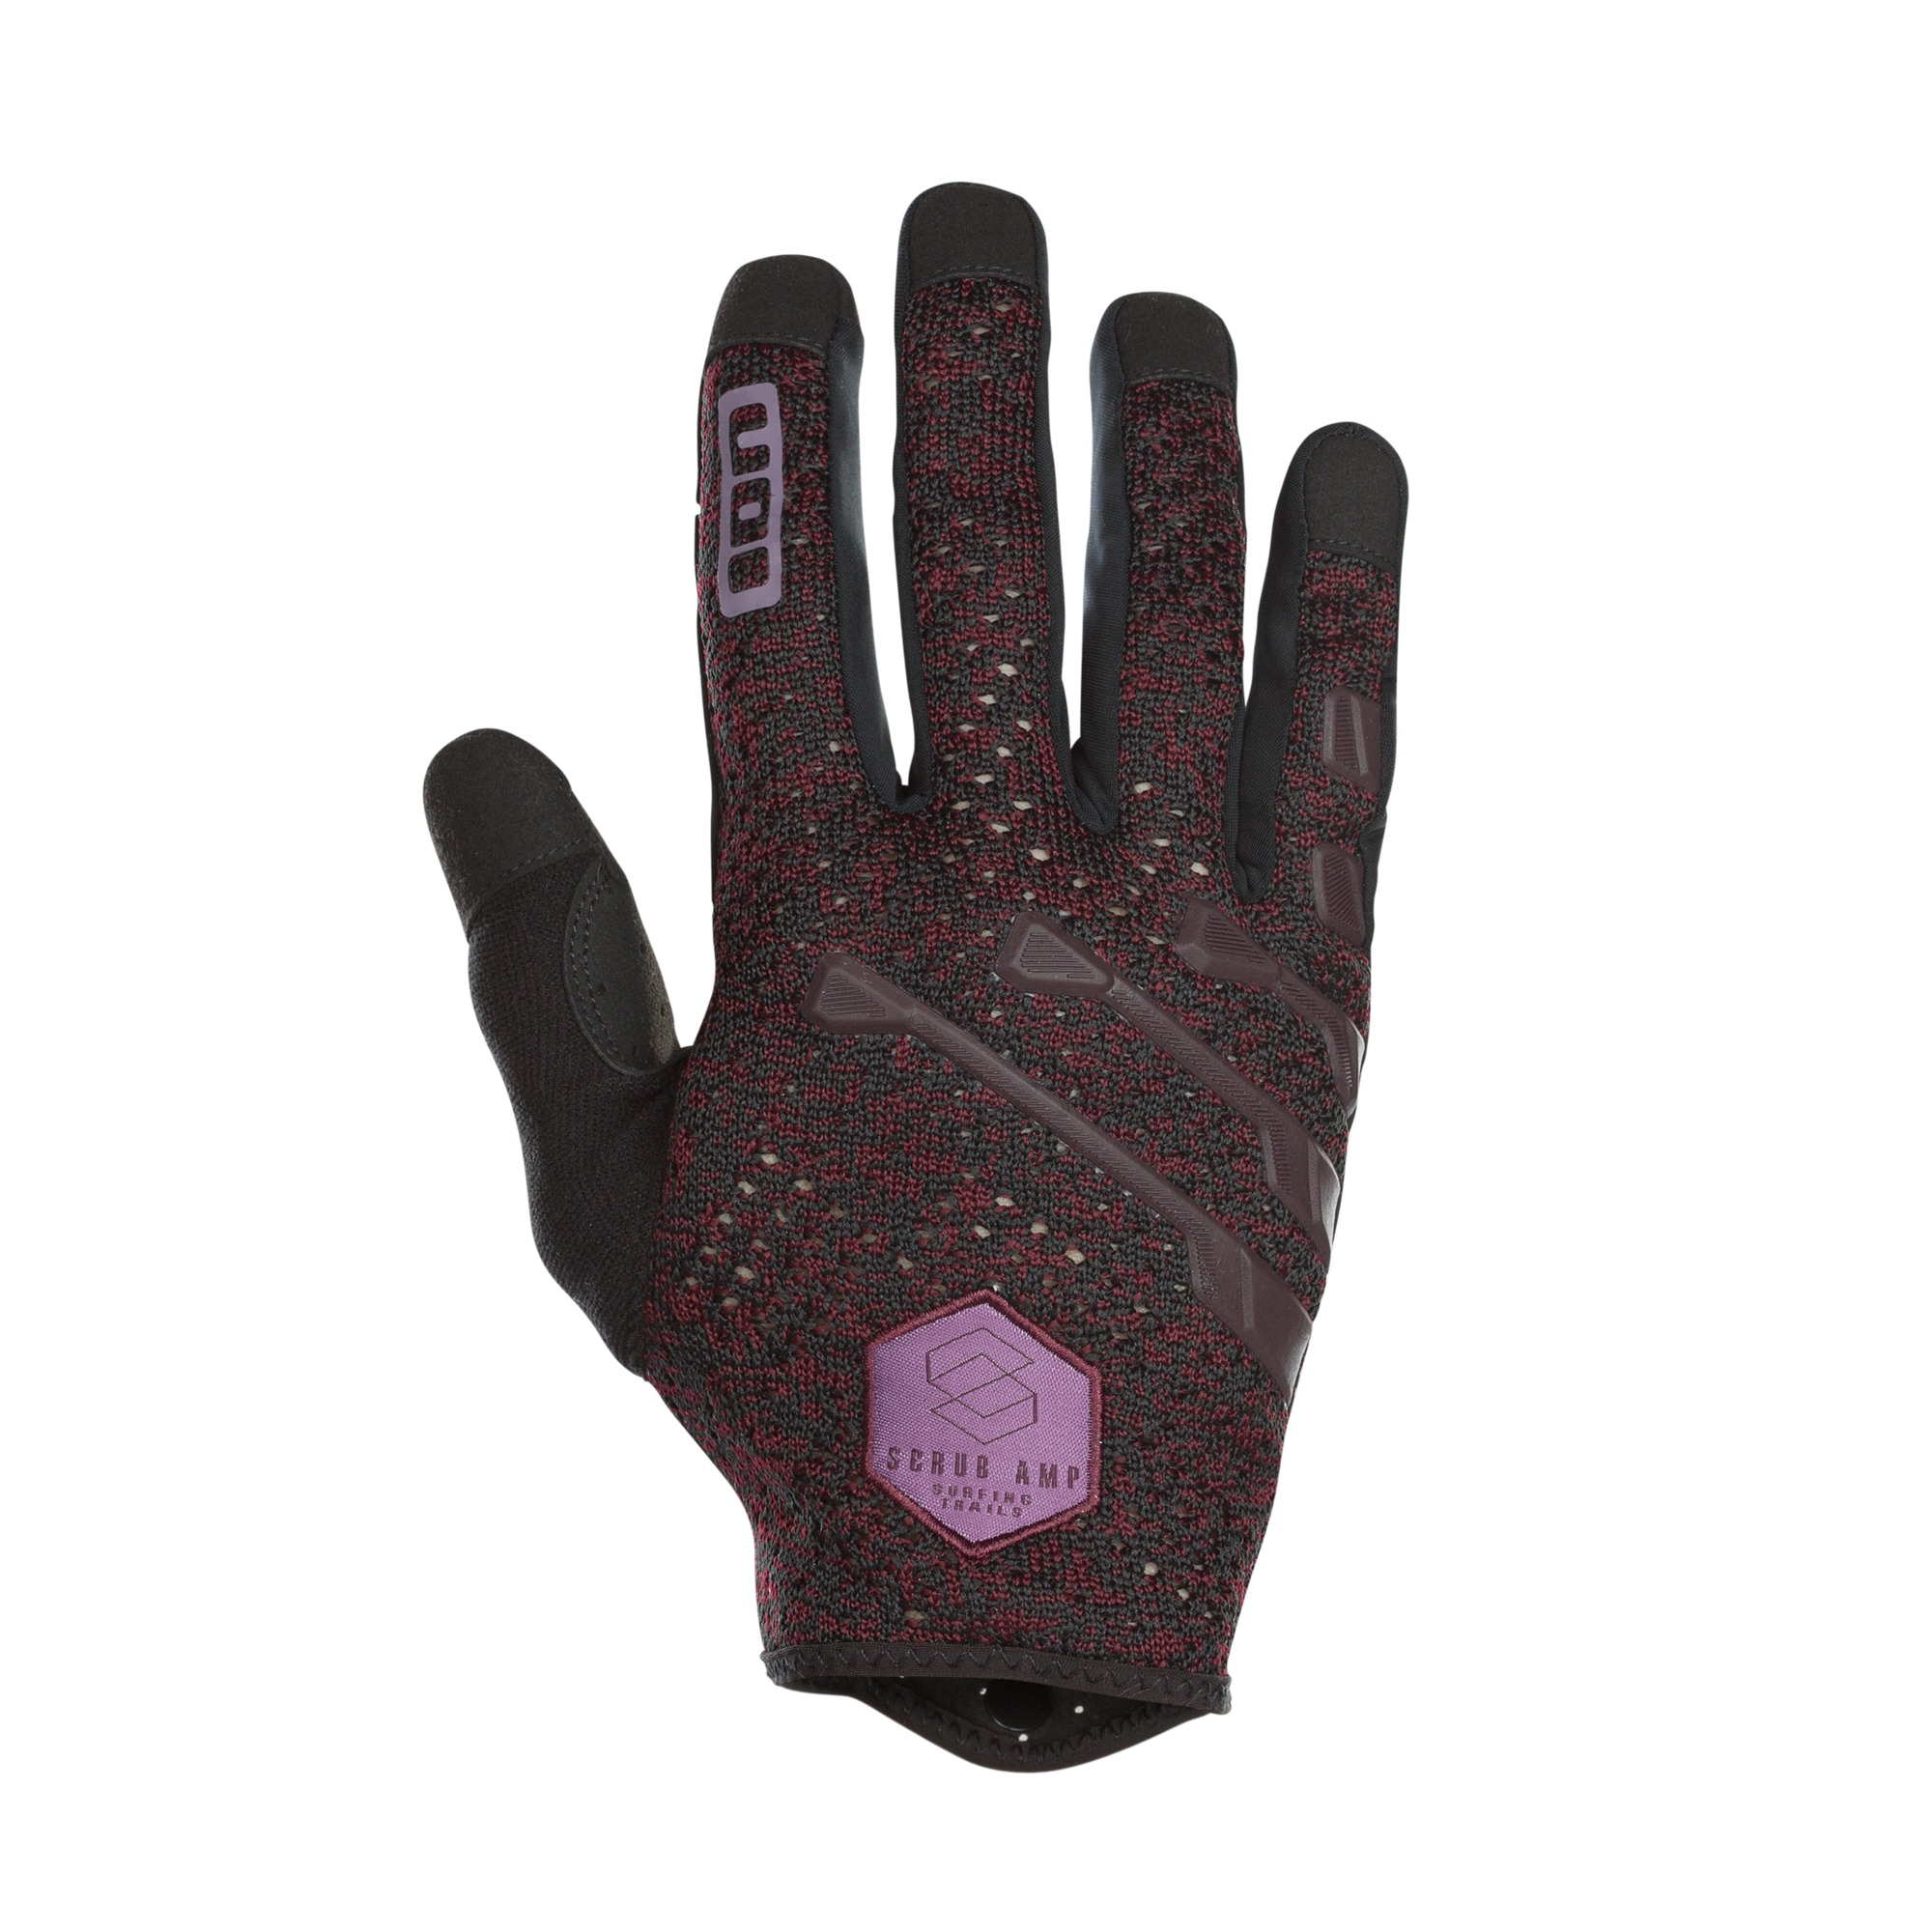 img_produse/ion_scrub_amp_glove_pink_isover_2019_1_104_22.02.19_3527.jpg